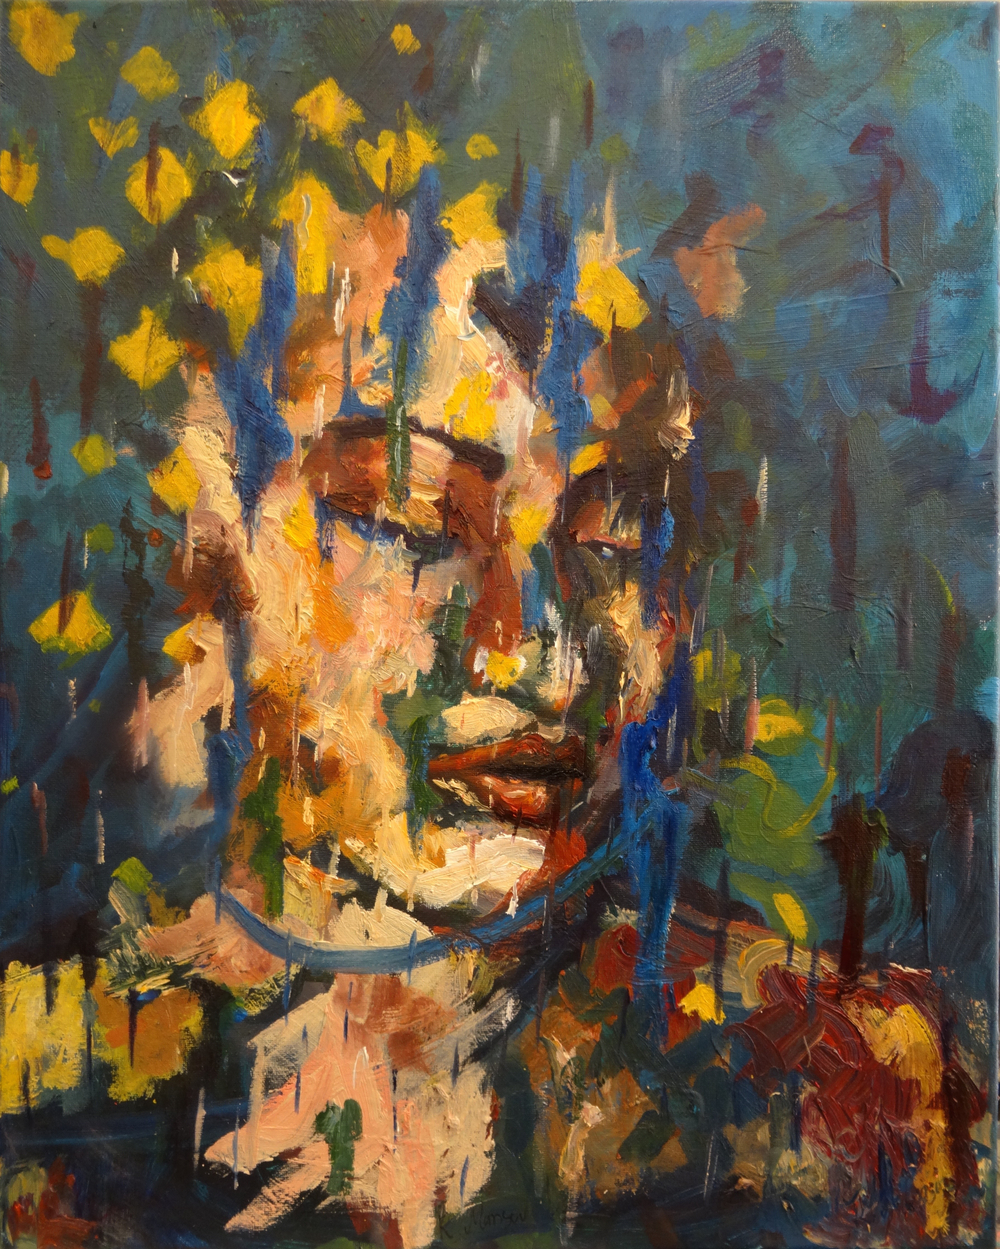 Mansourkhani Roya, No-One IV, 2015, oil on canvas, 20%22x 16%22.jpg